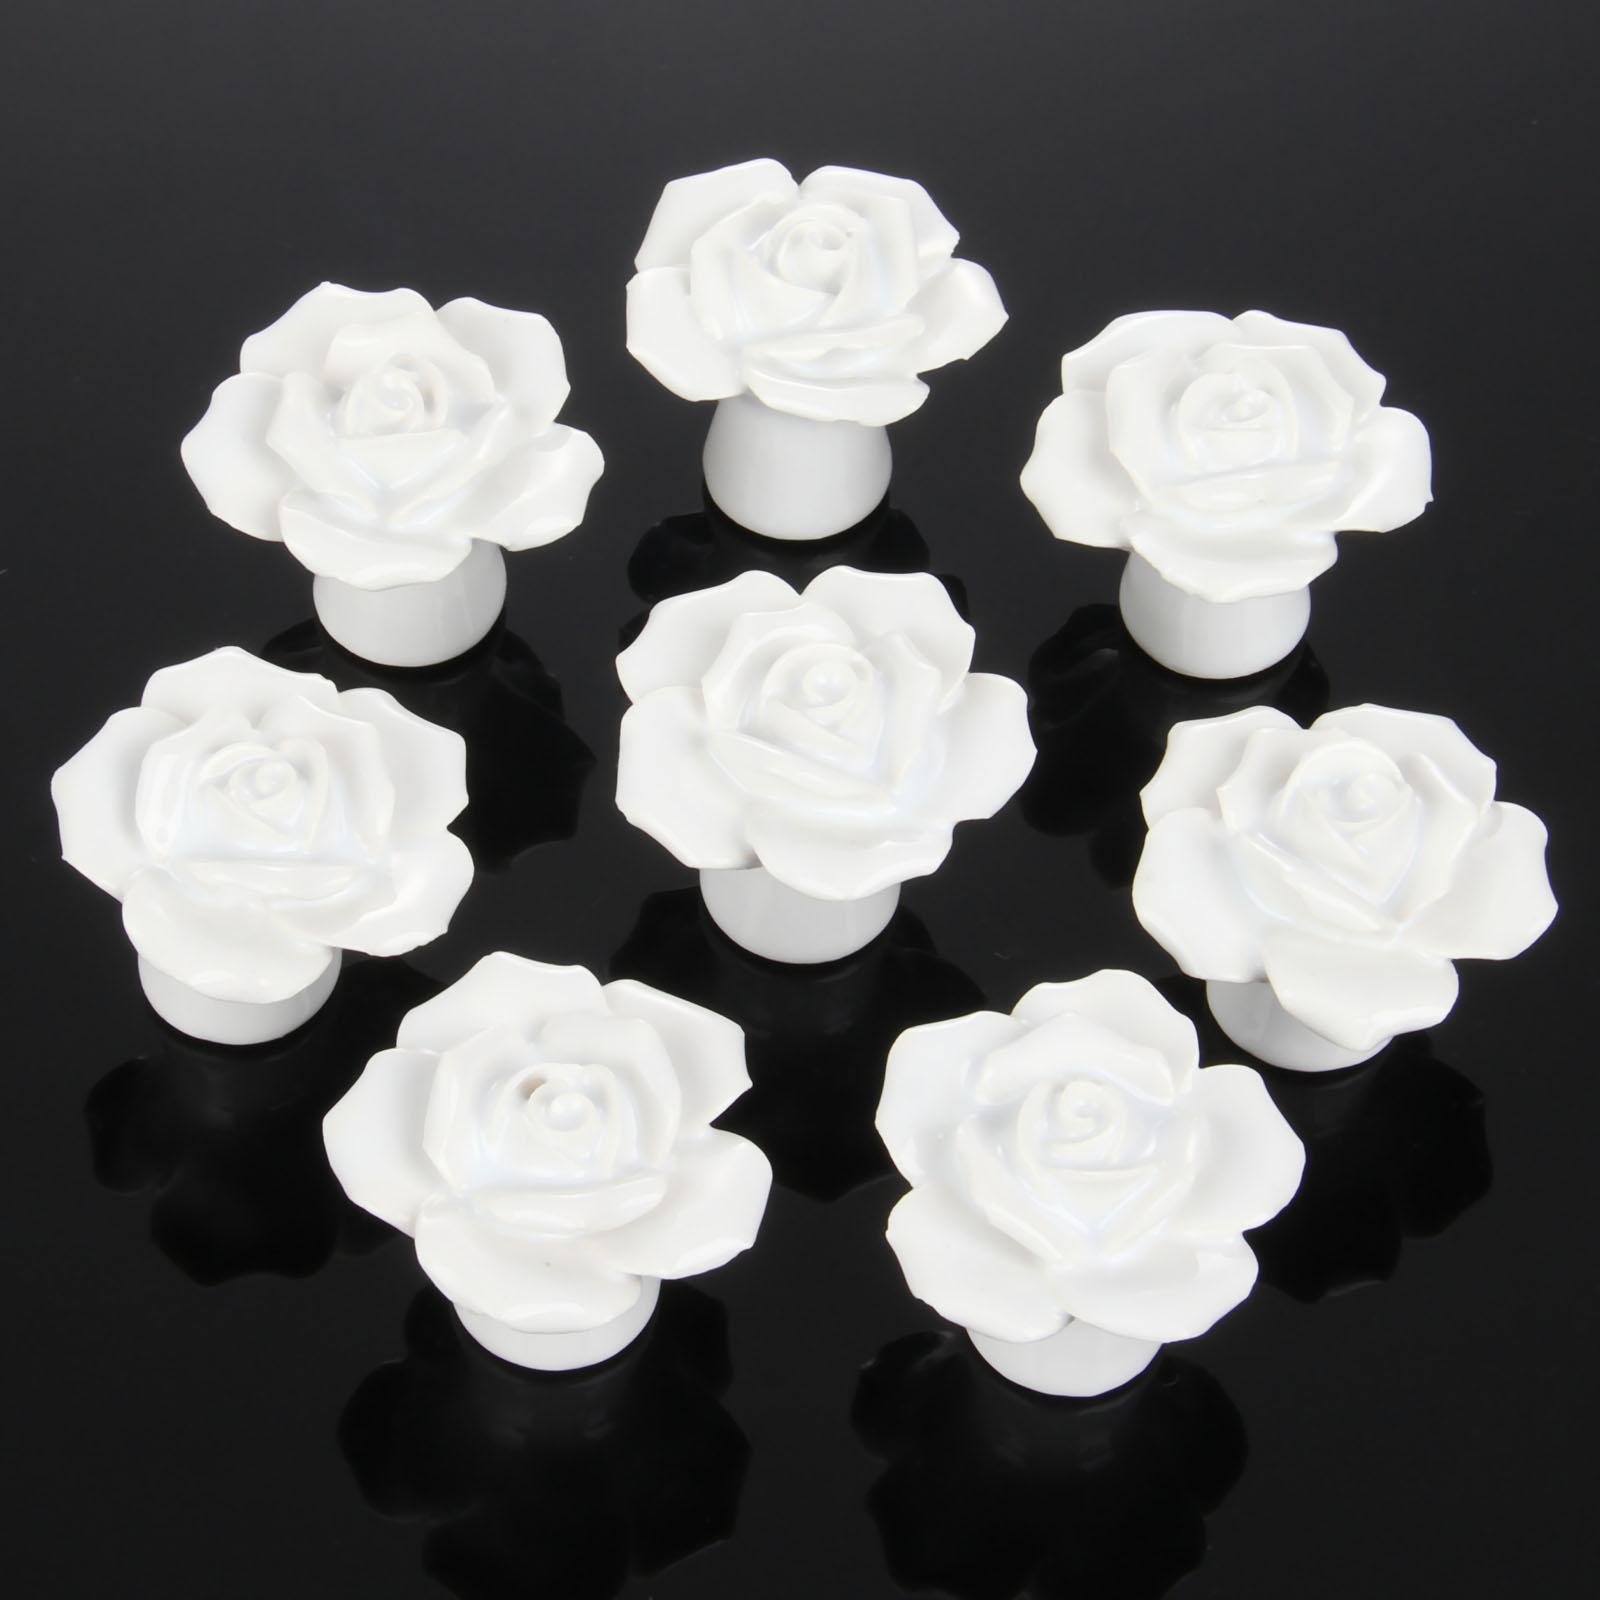 8Pcs Furniture Handles Ceramic Cabinet Knobs and Handles Door Cupboard Drawer Kitchen Pull Handles Furniture Fittings White Rose furniture drawer handles wardrobe door handle and knobs cabinet kitchen hardware pull gold silver long hole spacing c c 96 224mm